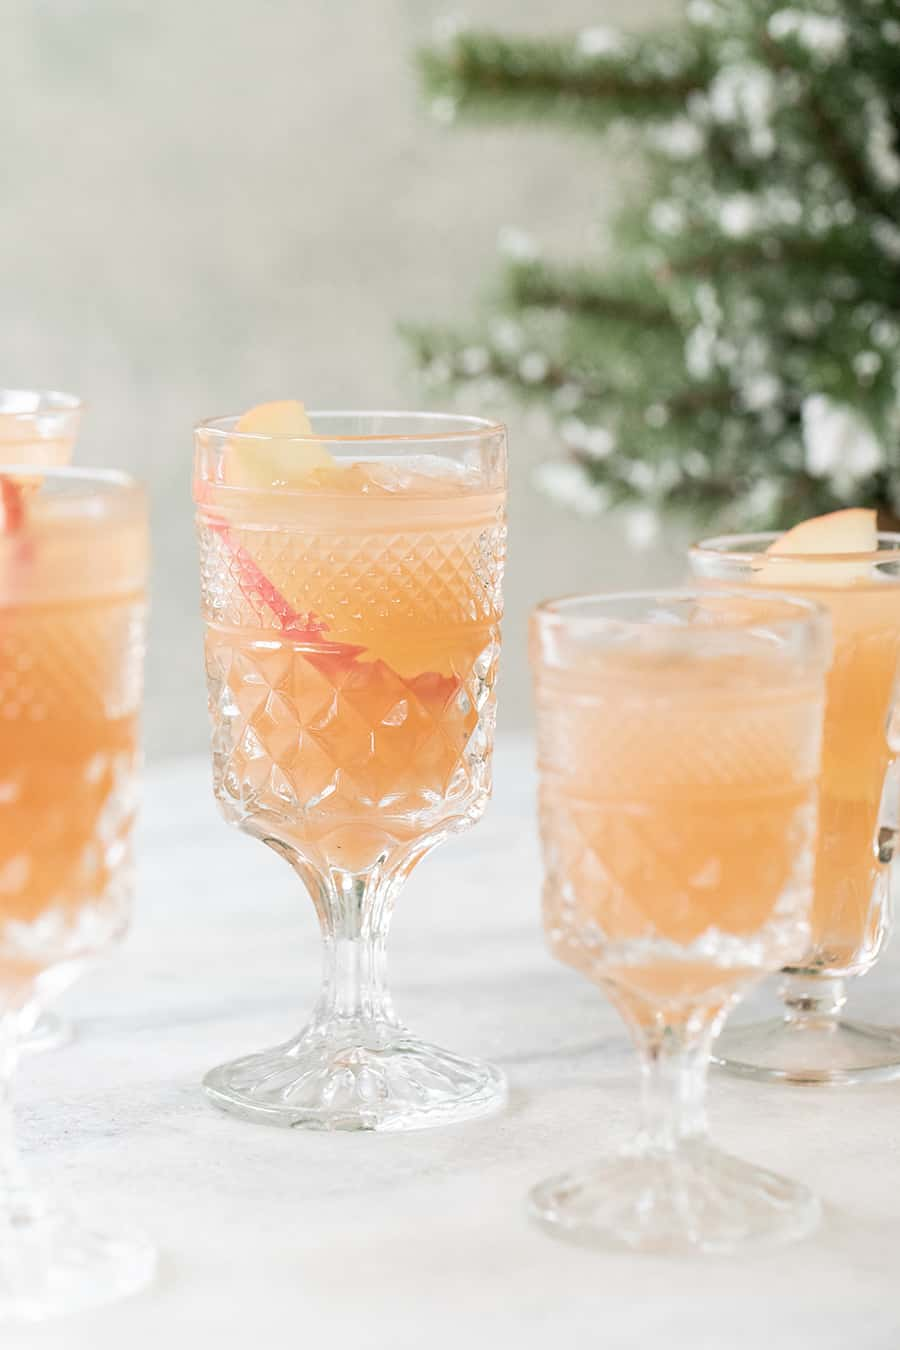 Glasses filled with holiday punch